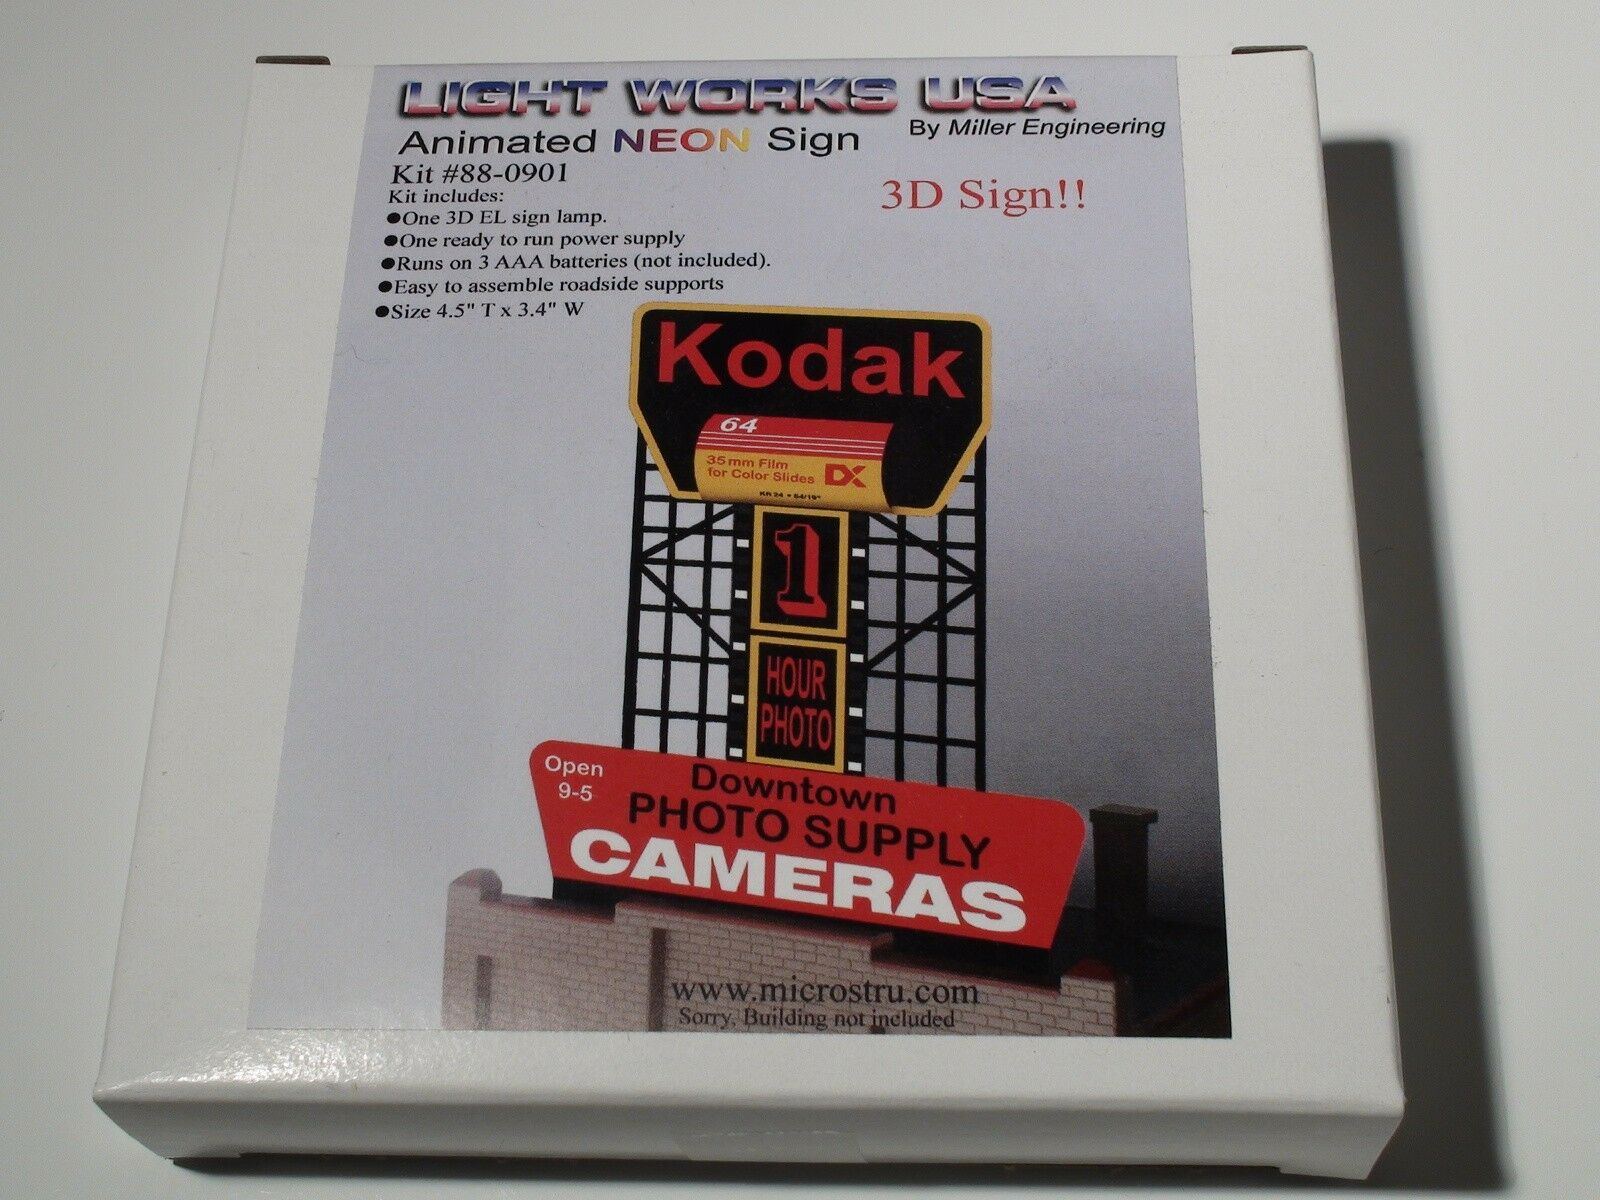 MILLER ENGINEERING KODAK BILLBOARD LIGHT WORKS USA 3D SIGN